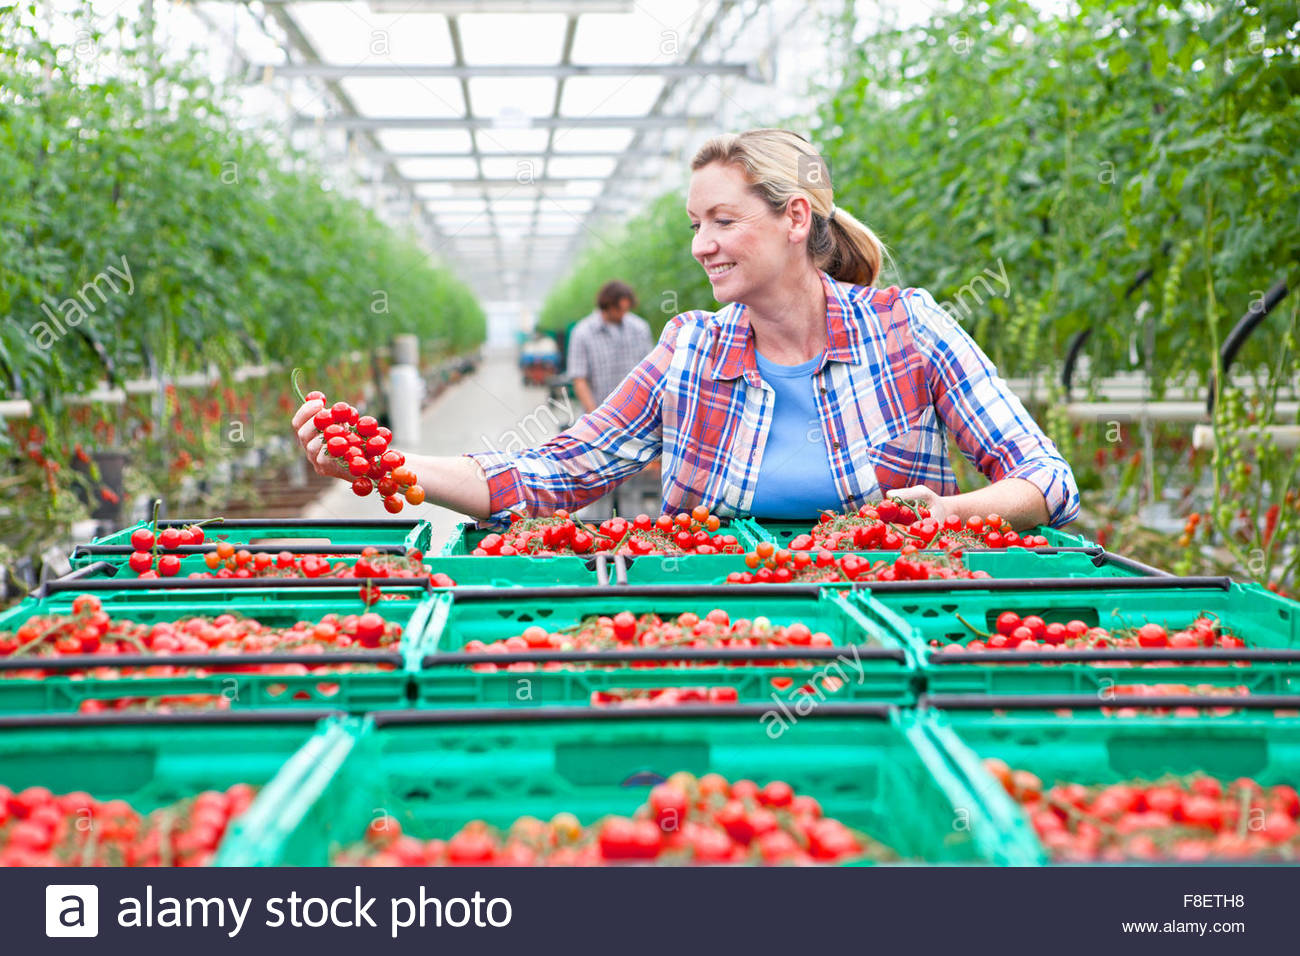 Smiling grower inspecting ripe red vine tomatoes in greenhouse - Stock Image